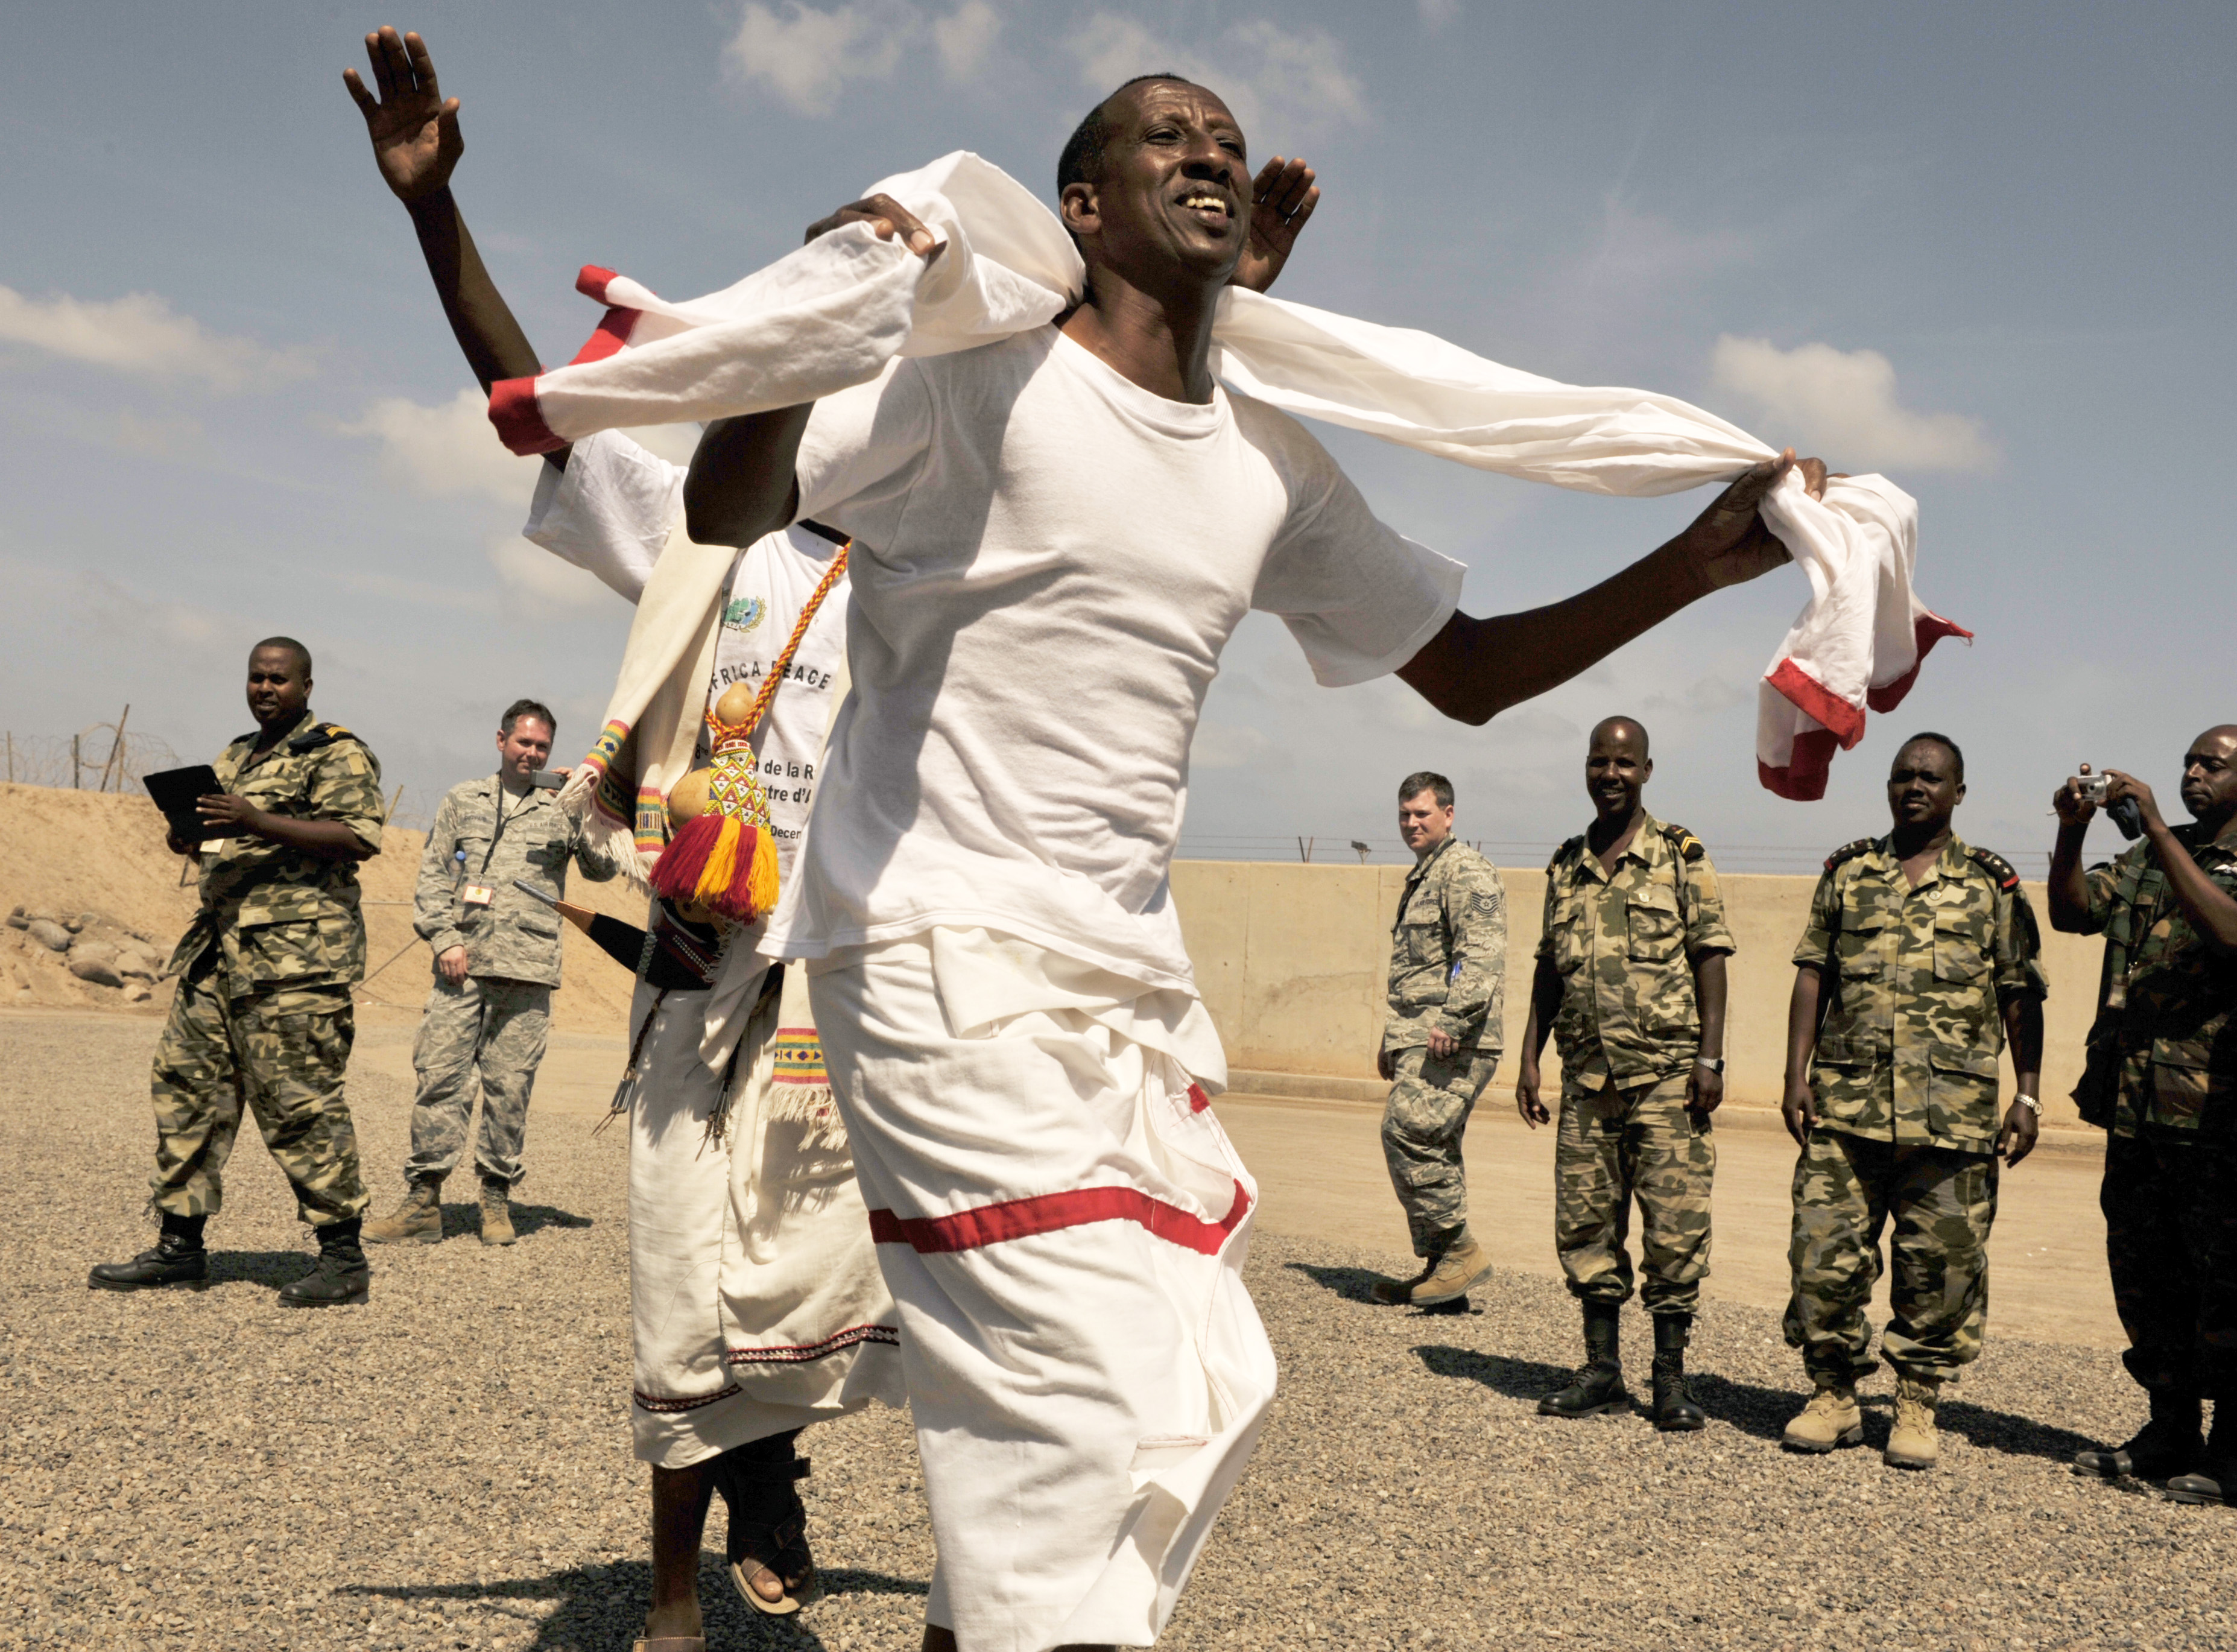 A Djiboutian air force member performs a traditional dance as part of a cultural exchange during African Partnership Flight–Djibouti at Djibouti Air Base, Feb. 9, 2015.  APF is the premiere program to bring together partner nations to increase cooperation and interoperability, which fosters stability and security throughout the continent. (U.S. Air Force Photo by Tech. Sgt. Ian Dean)